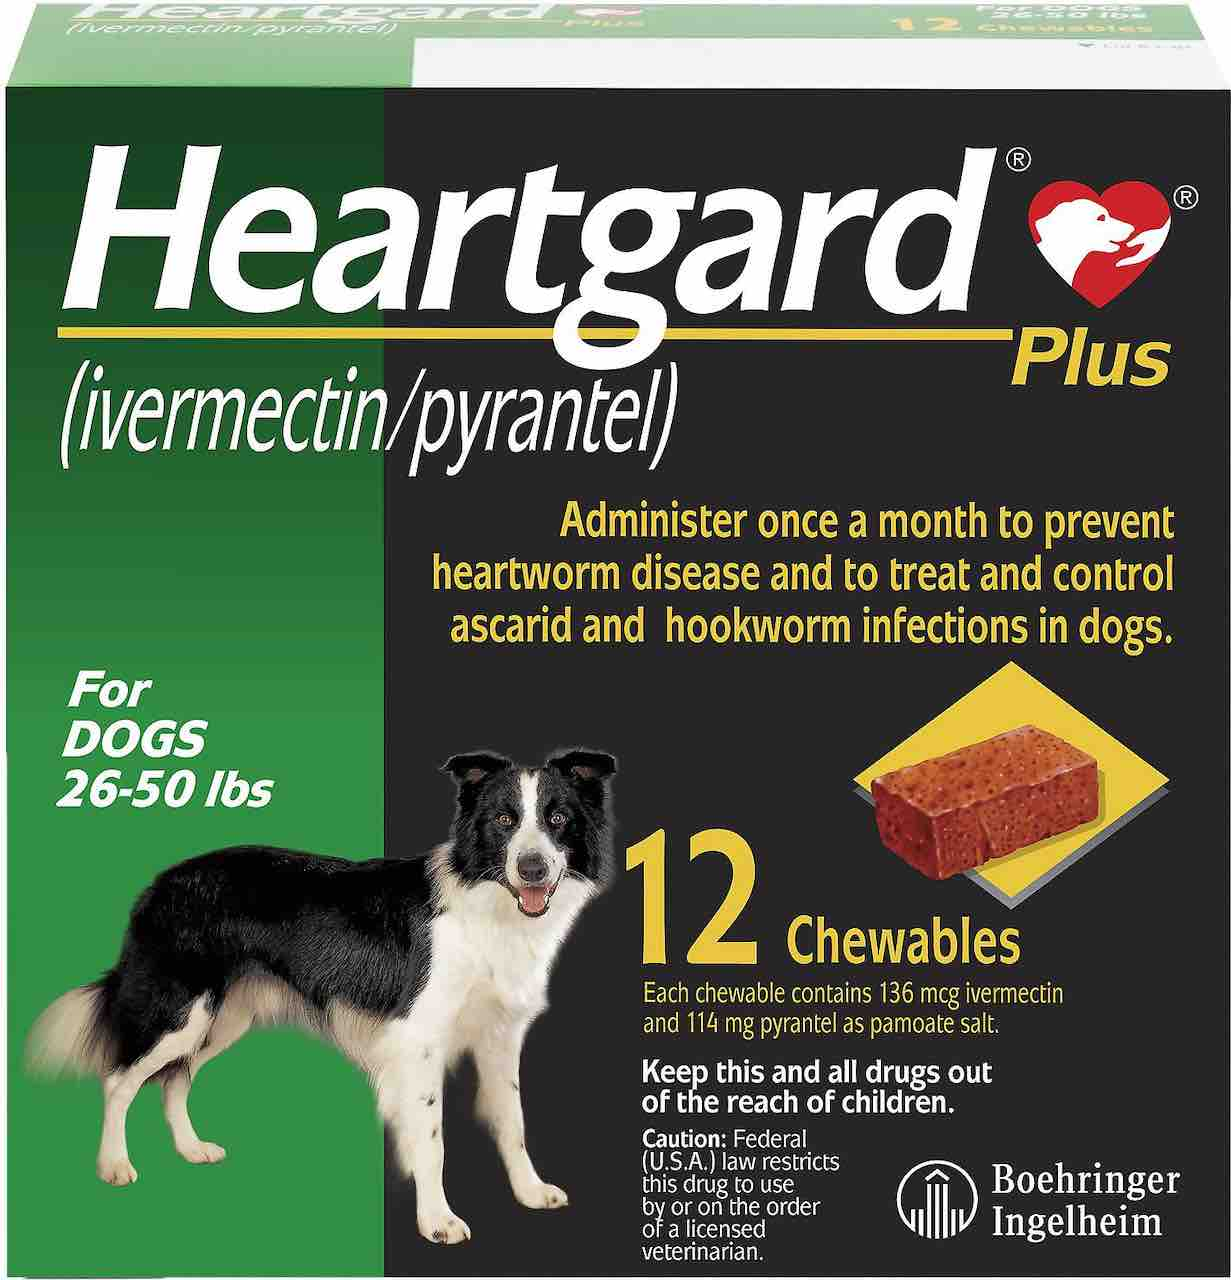 Heartgard Plus Chewables 12 doses for dogs 26-50 lbs (Green) 1